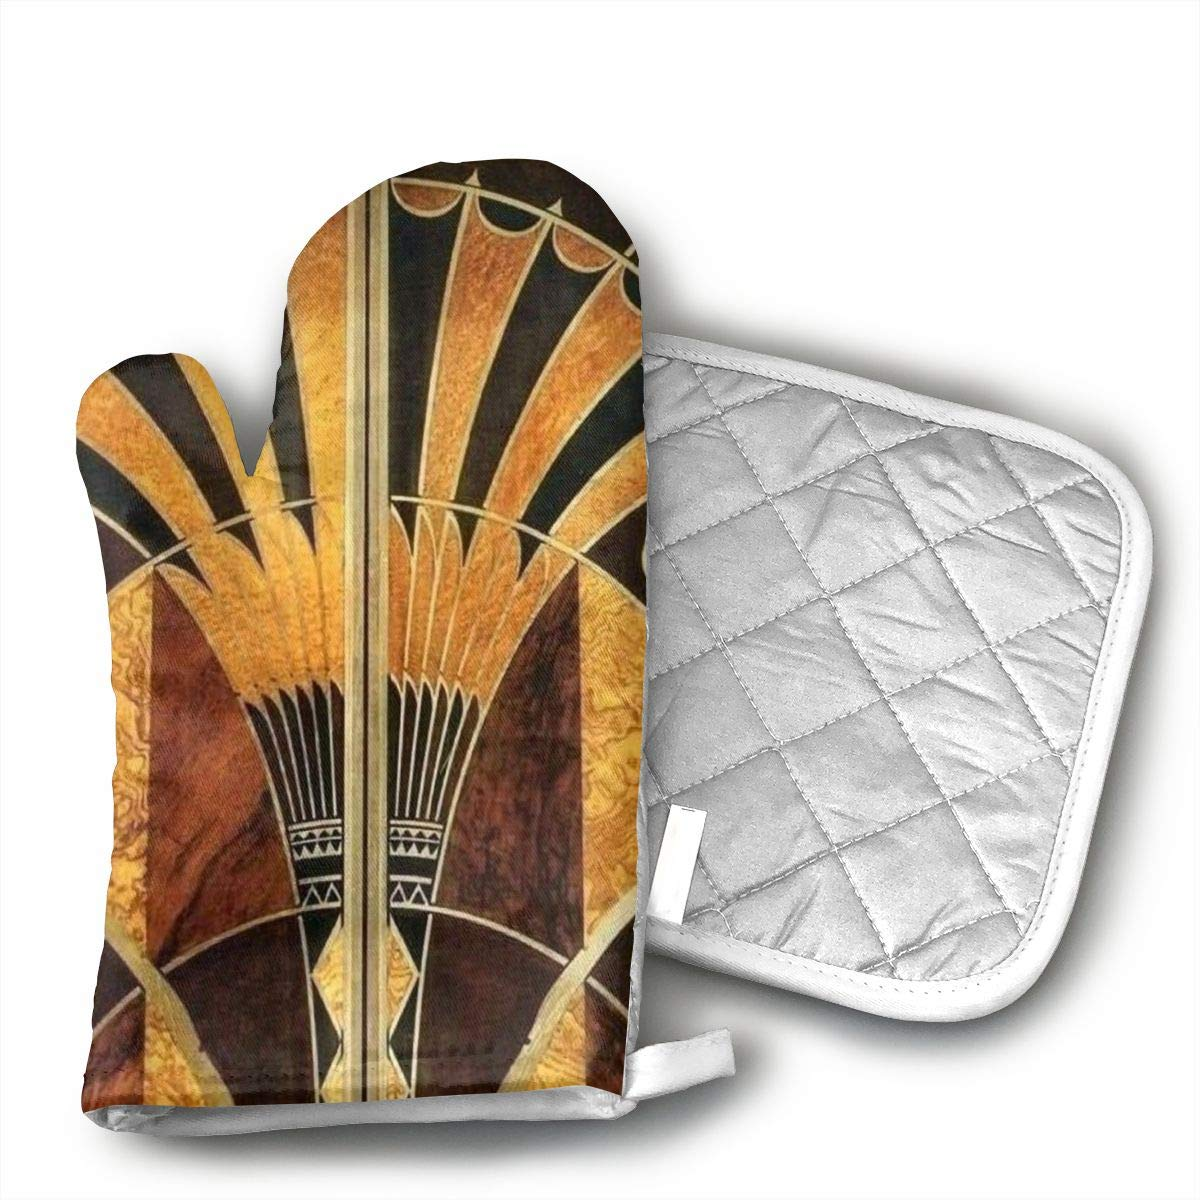 JFNNRUOP Art Deco Oven Mitts,with Potholders Oven Gloves,Insulated Quilted Cotton Potholders